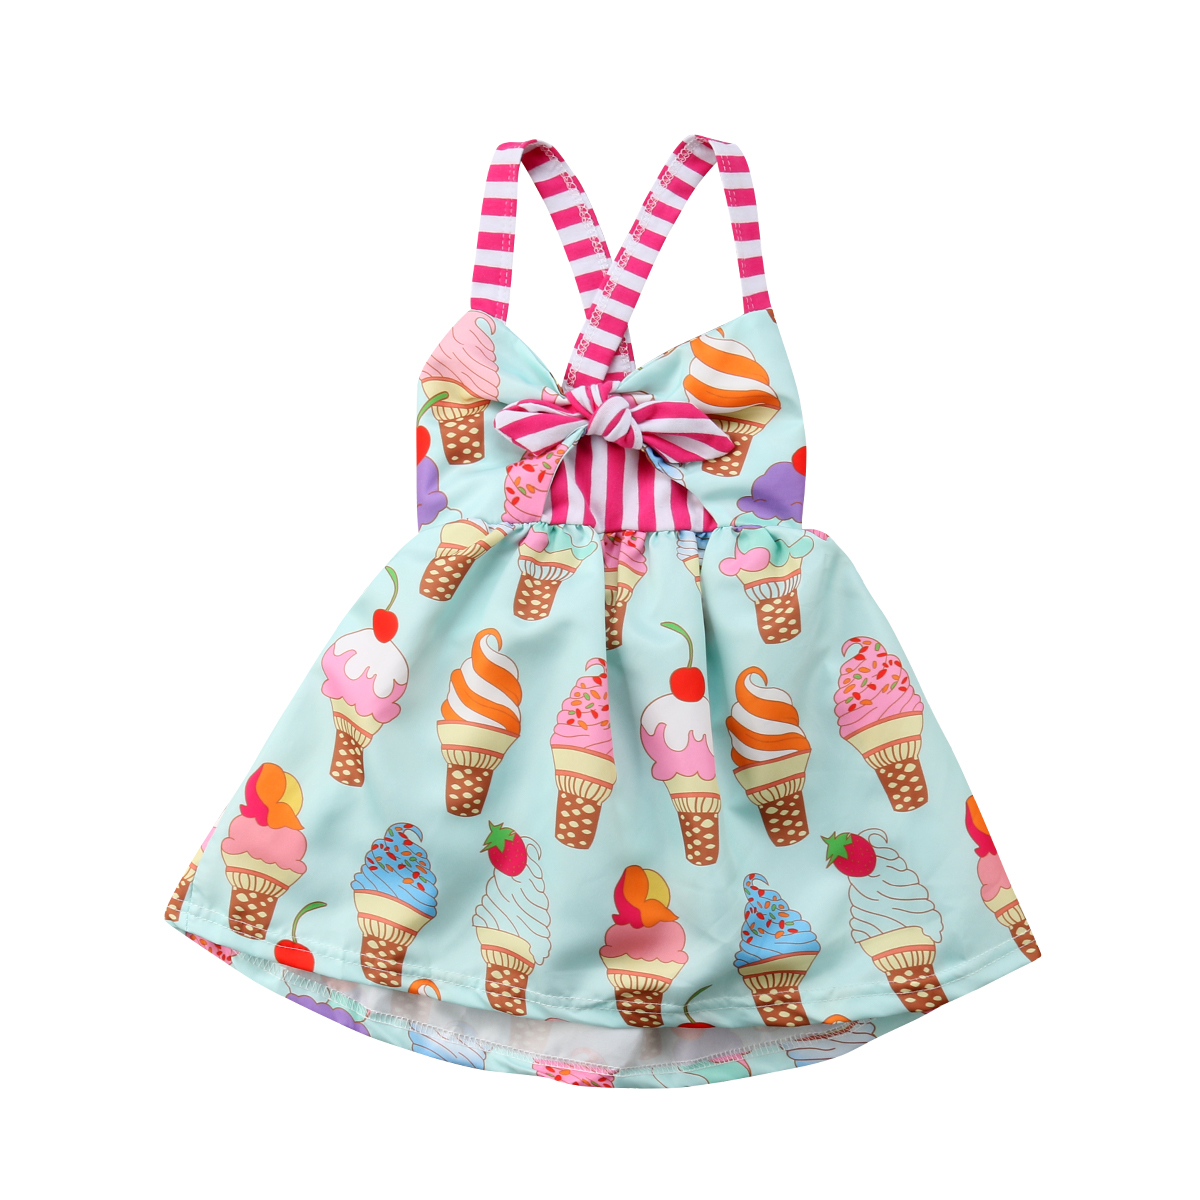 Cute Casual Infant Toddler Kids Baby Girls Strap Backless Ice Cream Dress Sundress Summer Clothes Outfits Clothing 6M-5Y